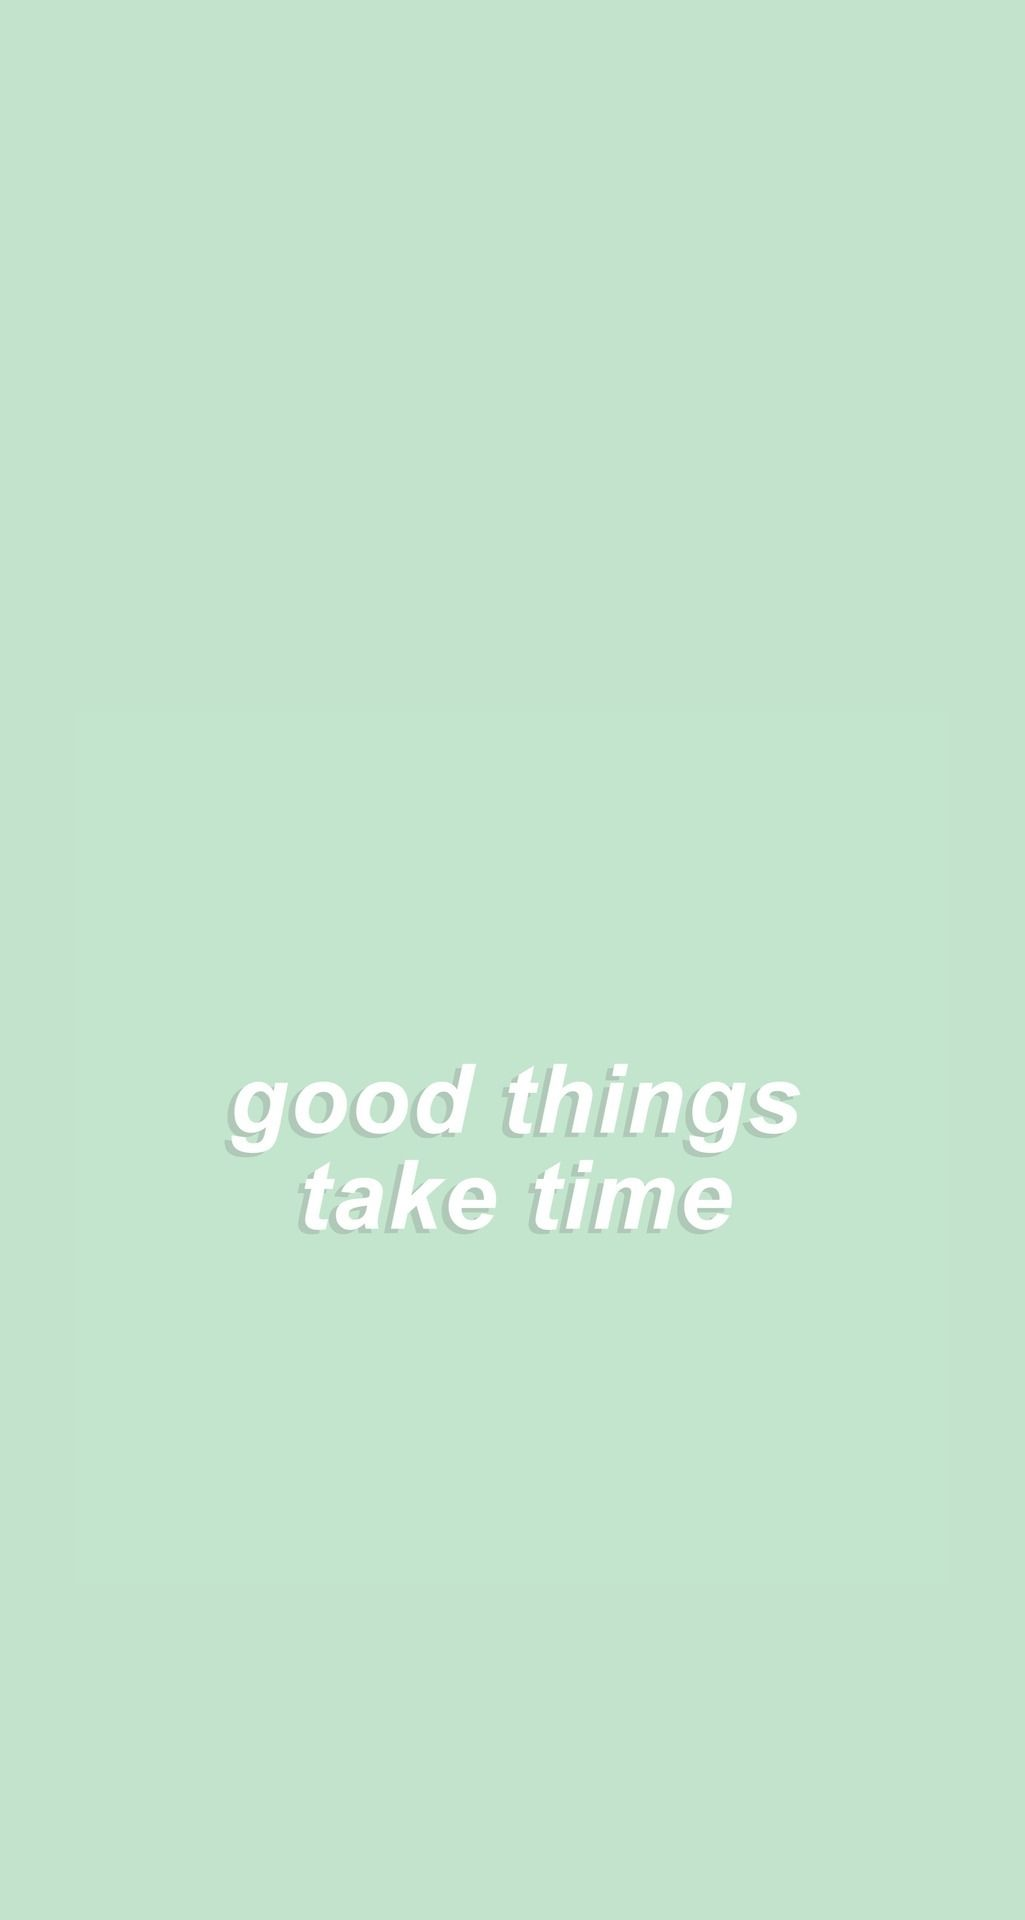 Emma S Studyblr Pastel Quotes Wallpaper Quotes Phone